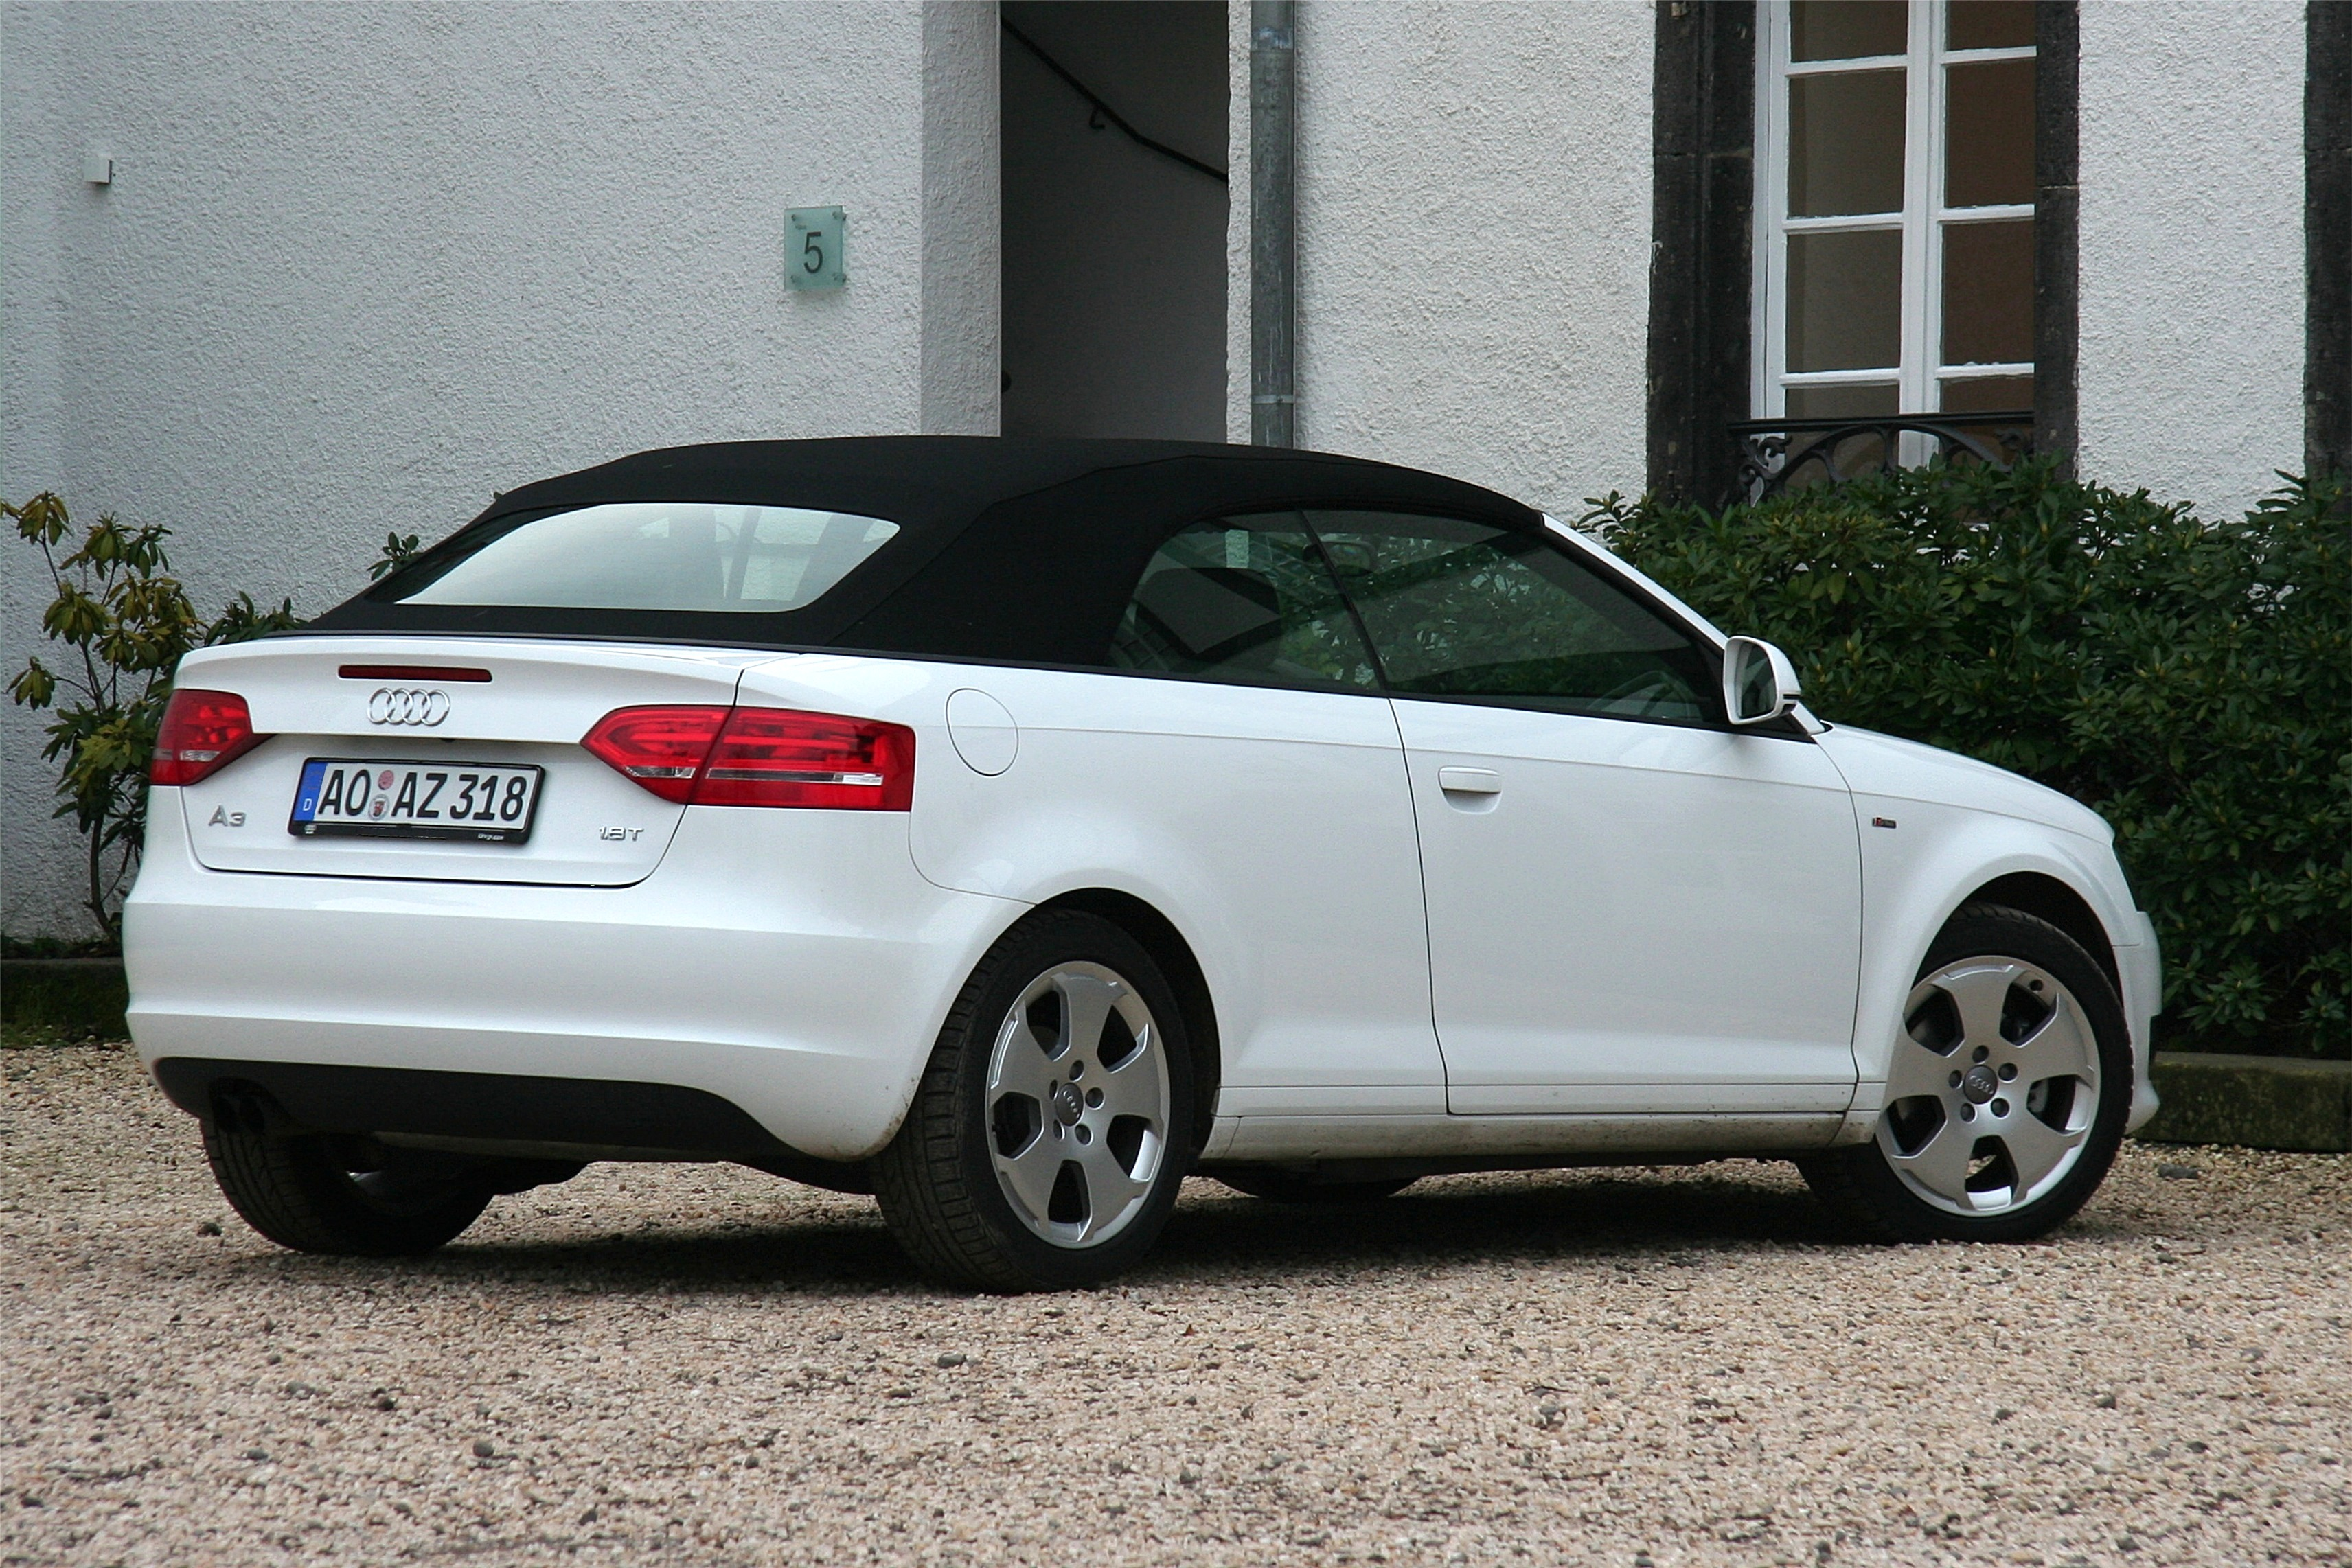 file audi a3 cabriolet heck bj 2008 2008 12 13 jpg wikimedia commons. Black Bedroom Furniture Sets. Home Design Ideas